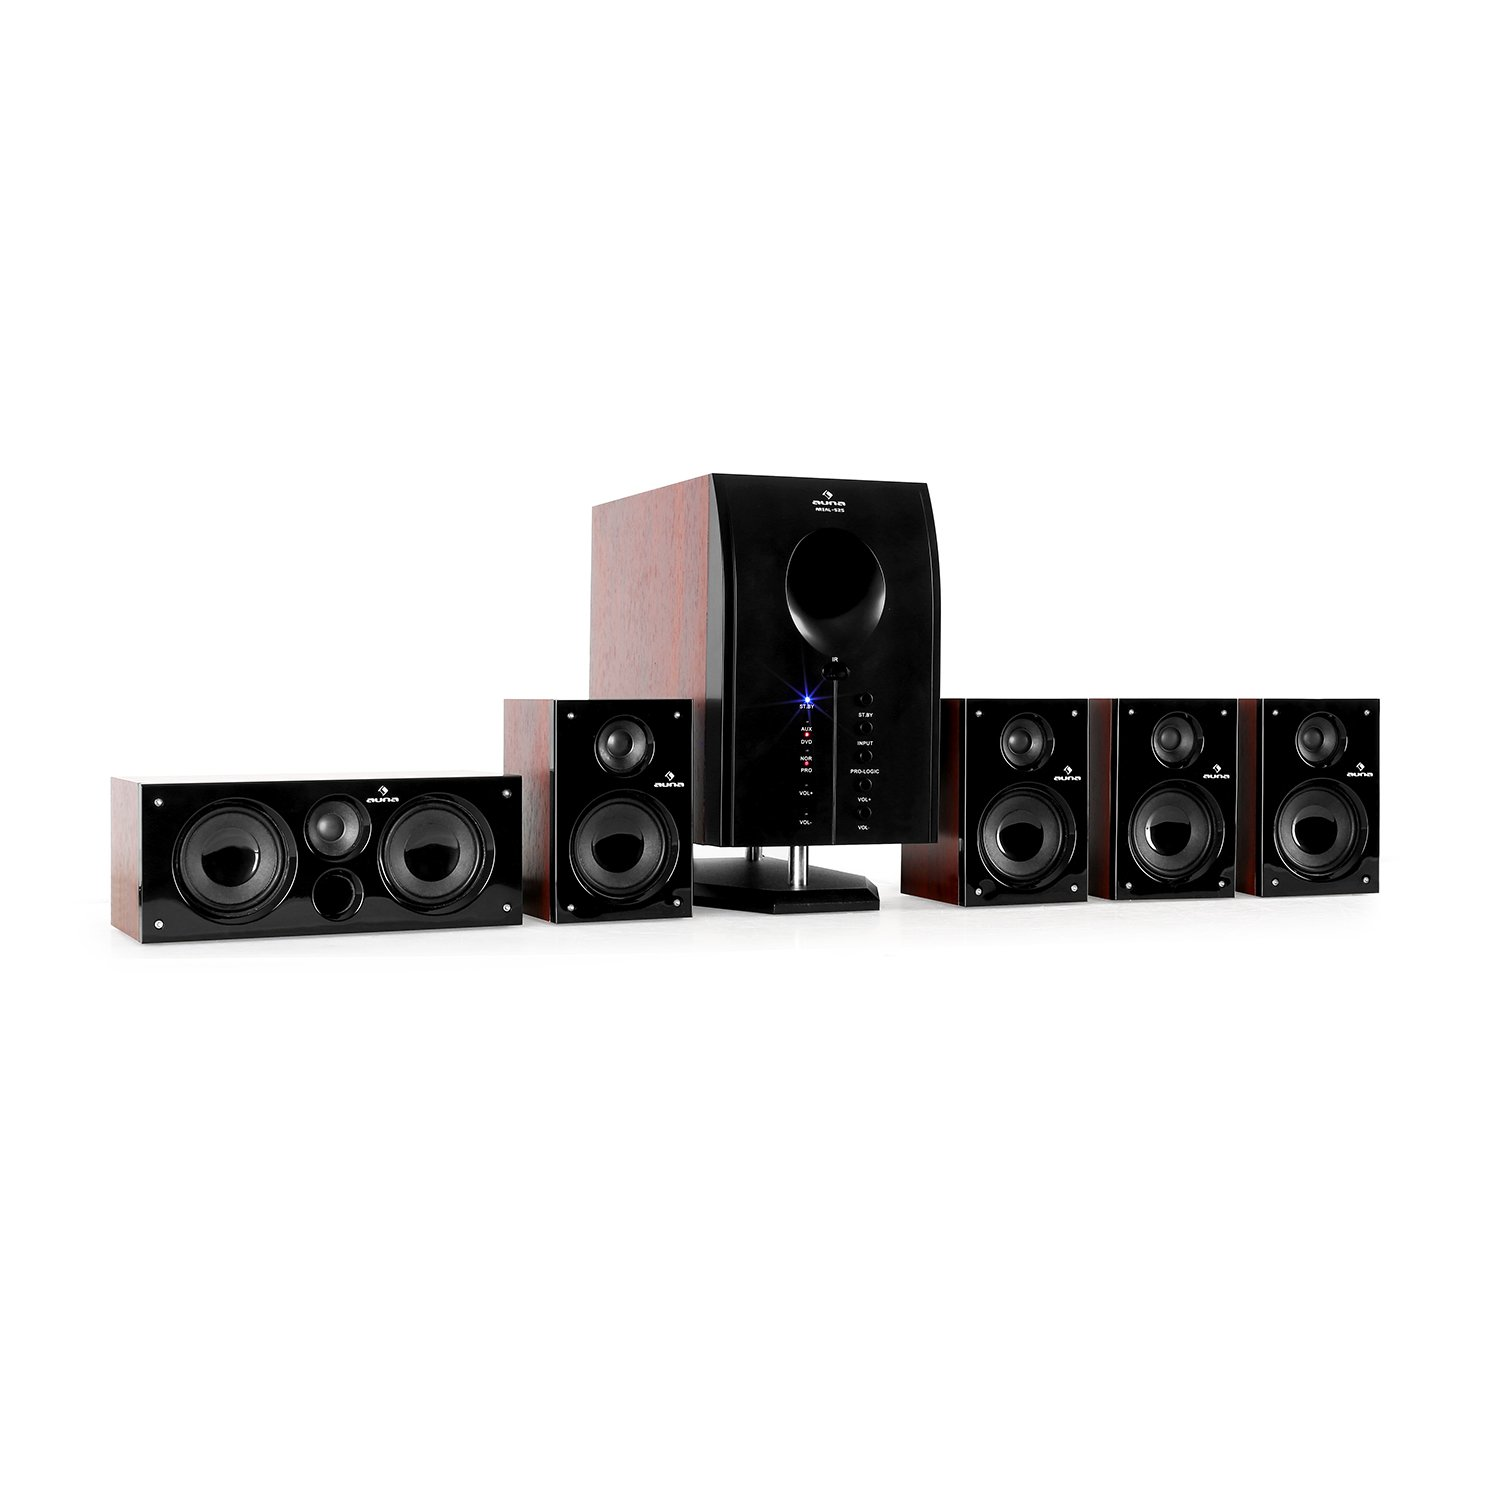 Auna Areal Nobility Système Surround 5.1 • Système Home Cinema • 120W RMS • 35W Subwoofer • Enceintes Satellites • Bluetooth 3.0 • Ports USB/SD • AUX-in • Noir MG5-Areal Nobilityf